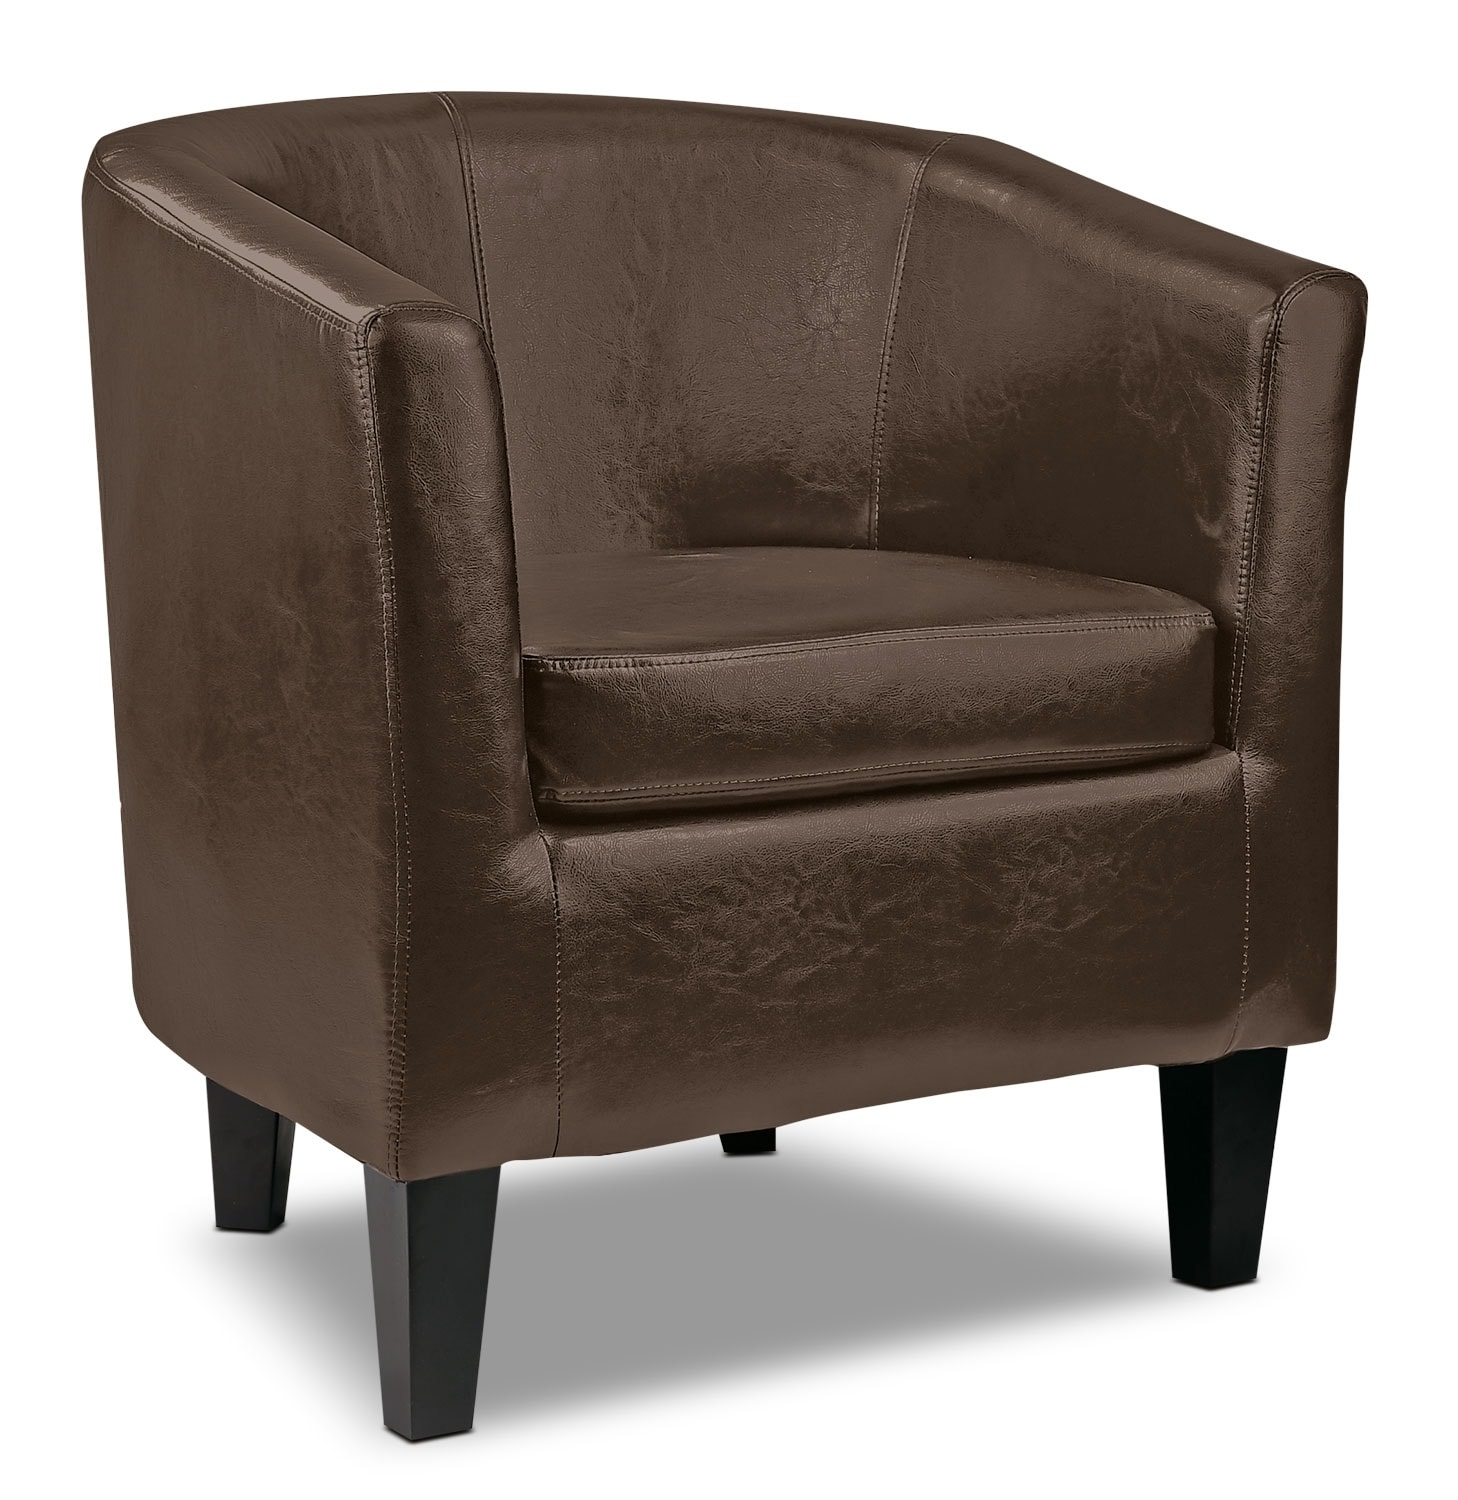 Lad bonded leather accent club chair dark brown the brick for Accent chair with brown leather sofa